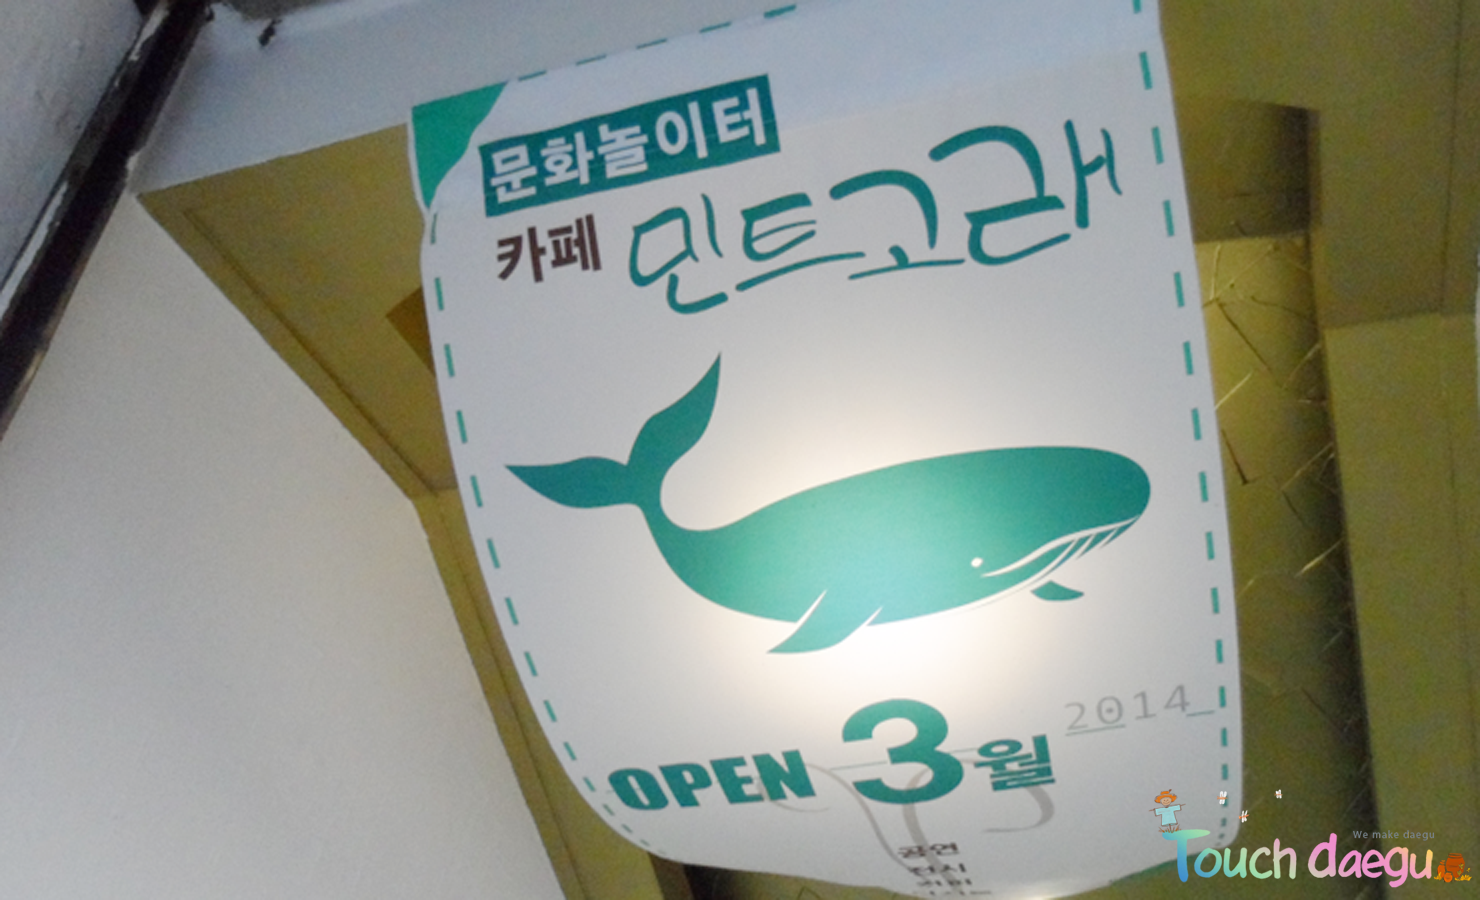 Grand Open date of Cafe Mint Whale